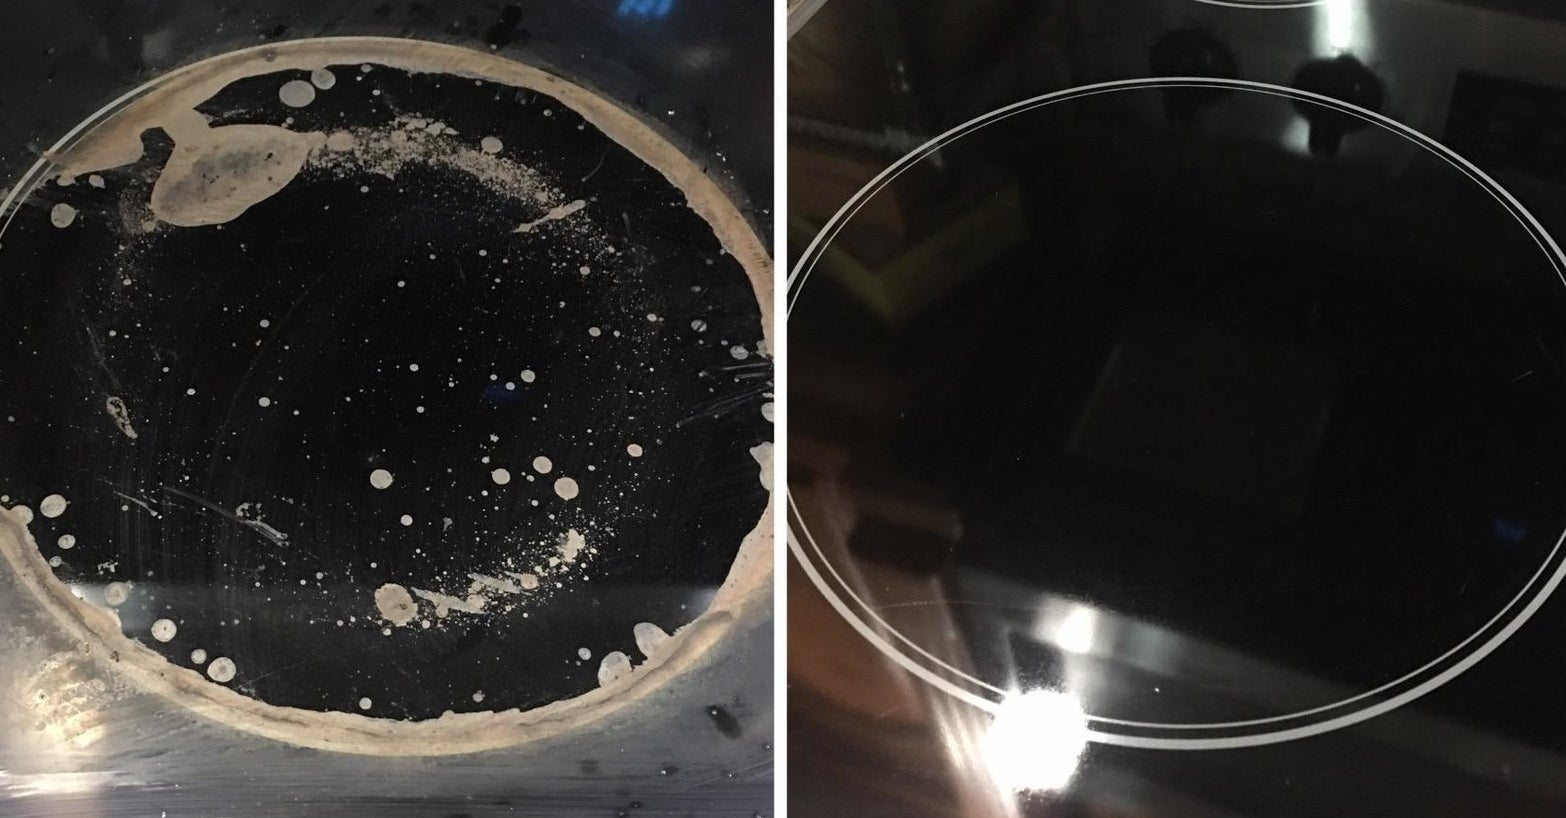 Reviewer photo showing a cooktop before and after using the cleaning kit. The before photo shows heavy staining and the after photo shows a clean shiny cooktop